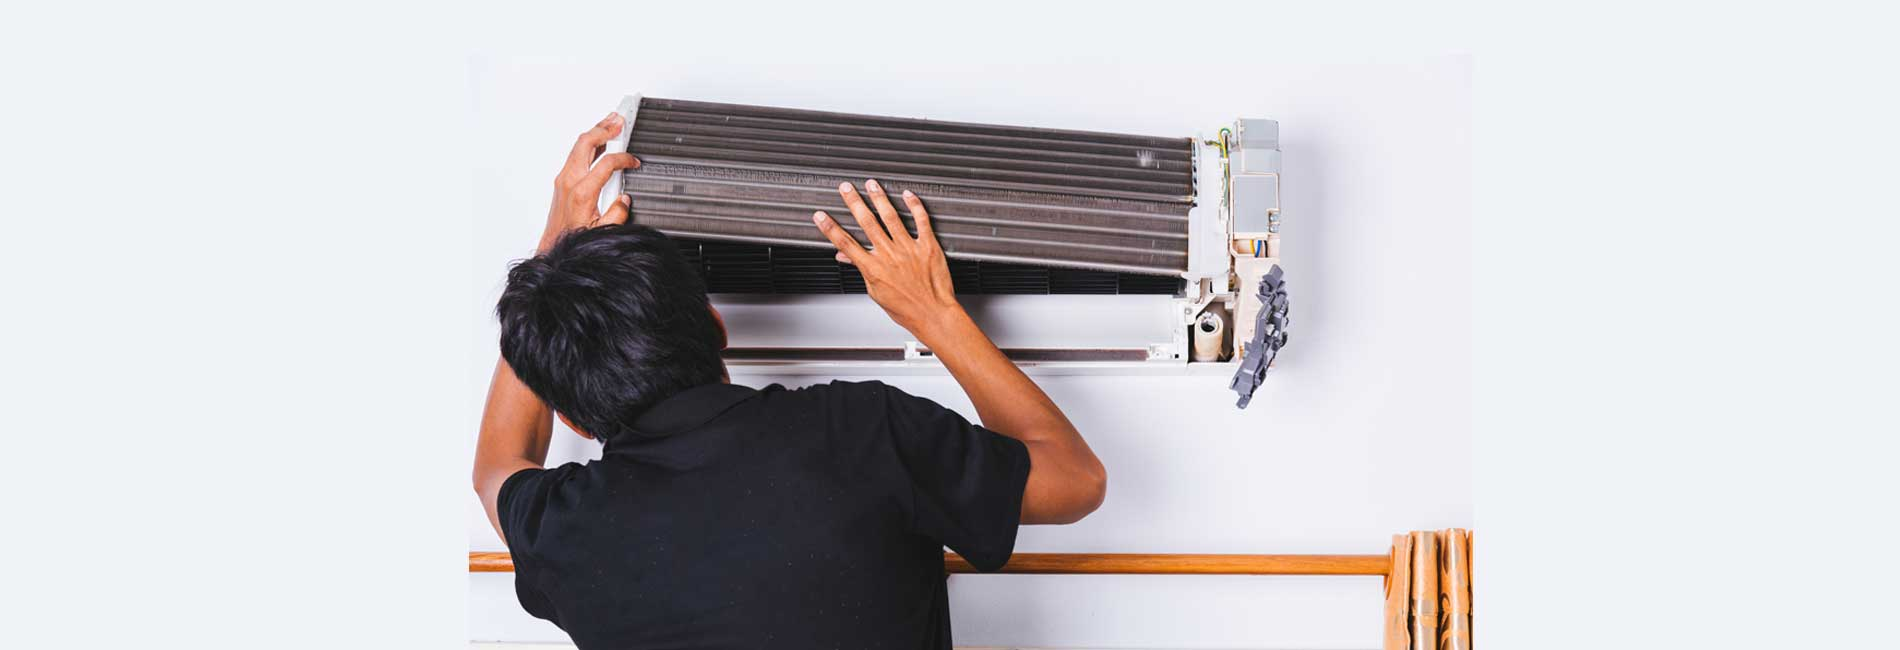 Bluestar Air Condition Service in Kandigai